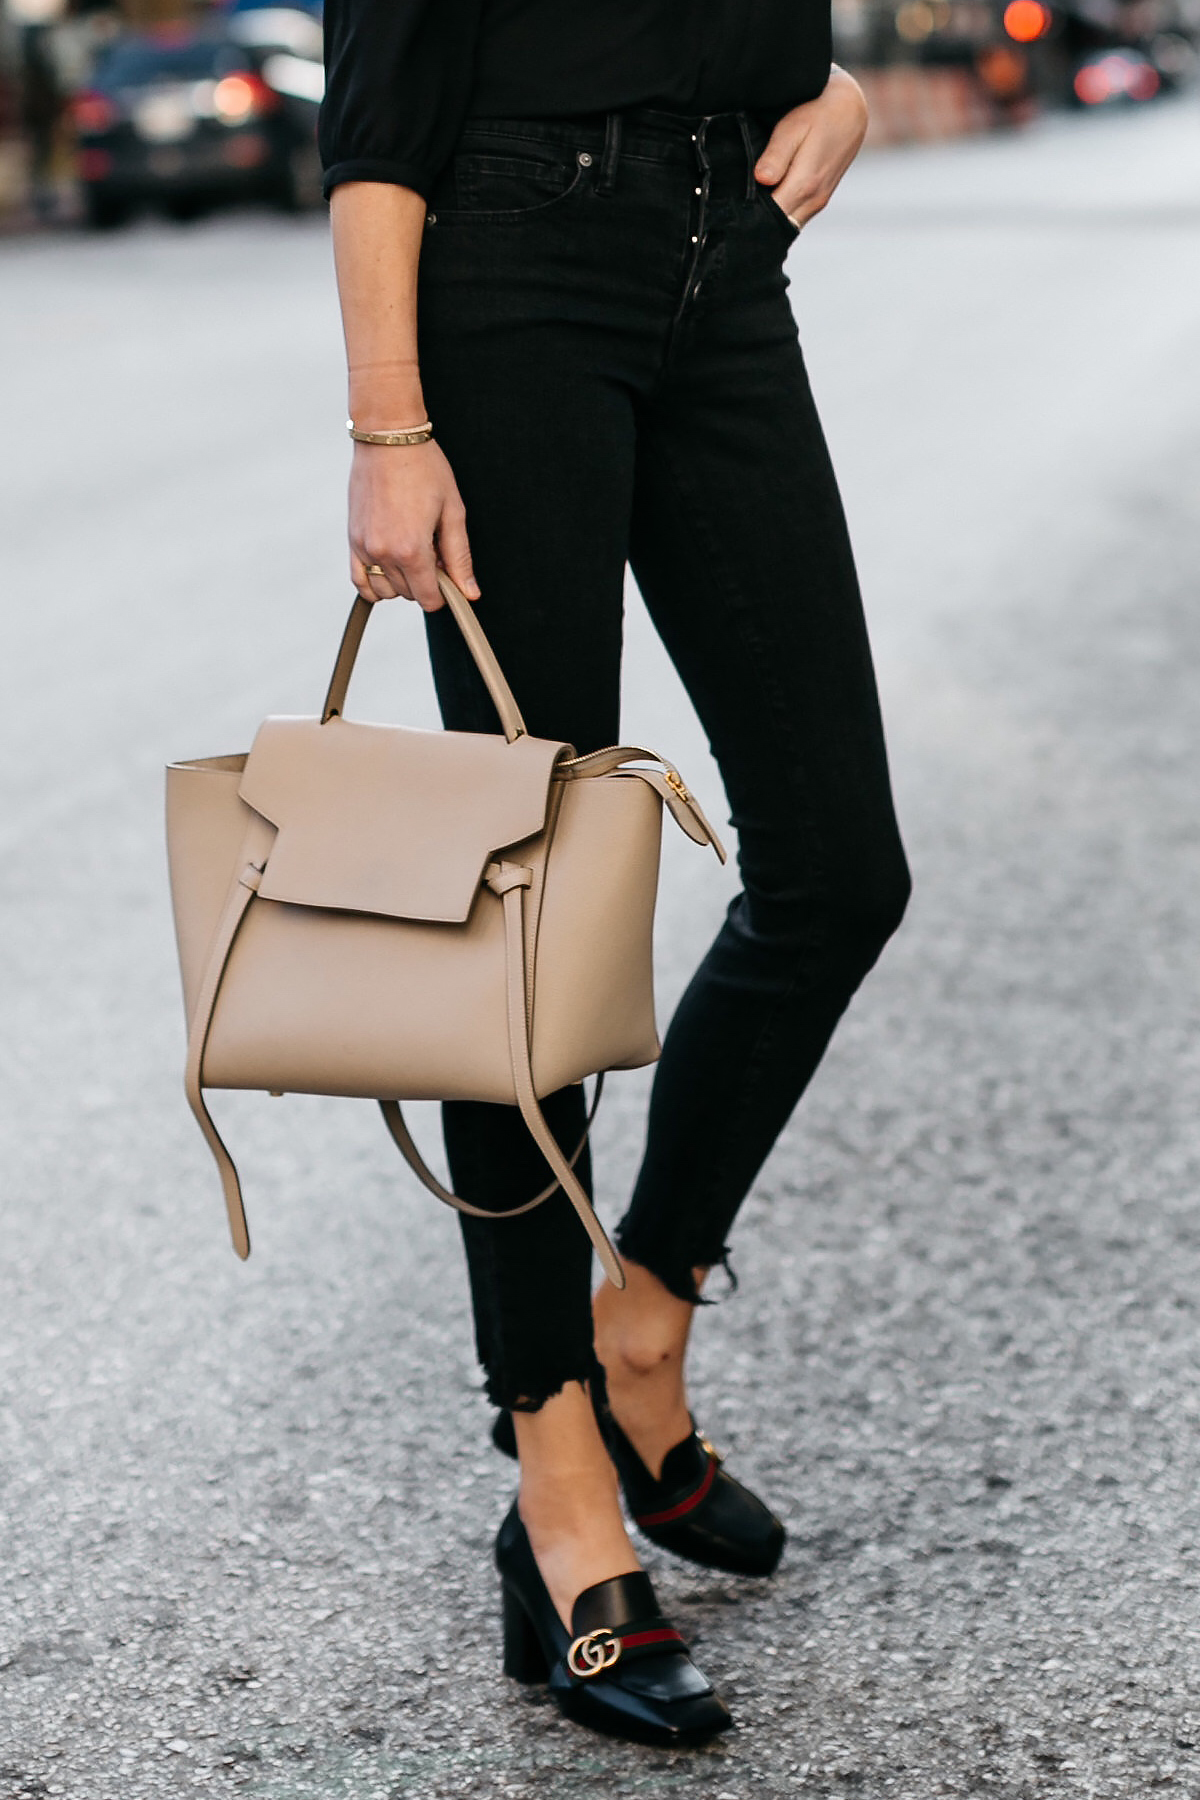 Woman Wearing Gucci Black Peyton Block Heel Pumps Celine Belt Bag Madewell Black Skinny Jeans Fashion Jackson Dallas Blogger Fashion Blogger Street Style